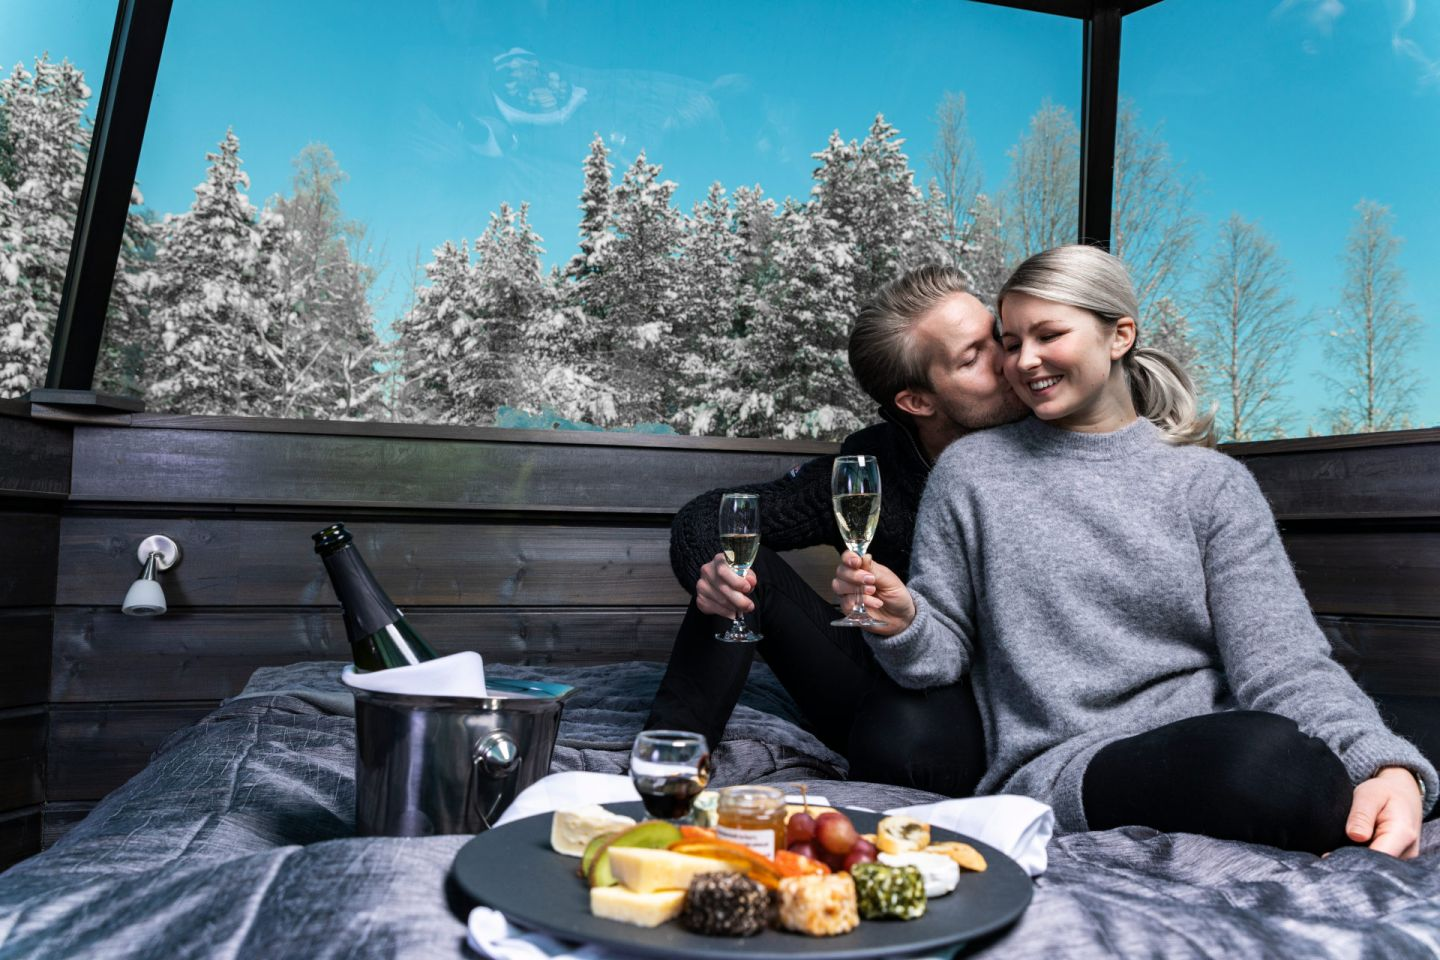 A romantic evening together in an aurora bubble in Rovaniemi, Finland in winter